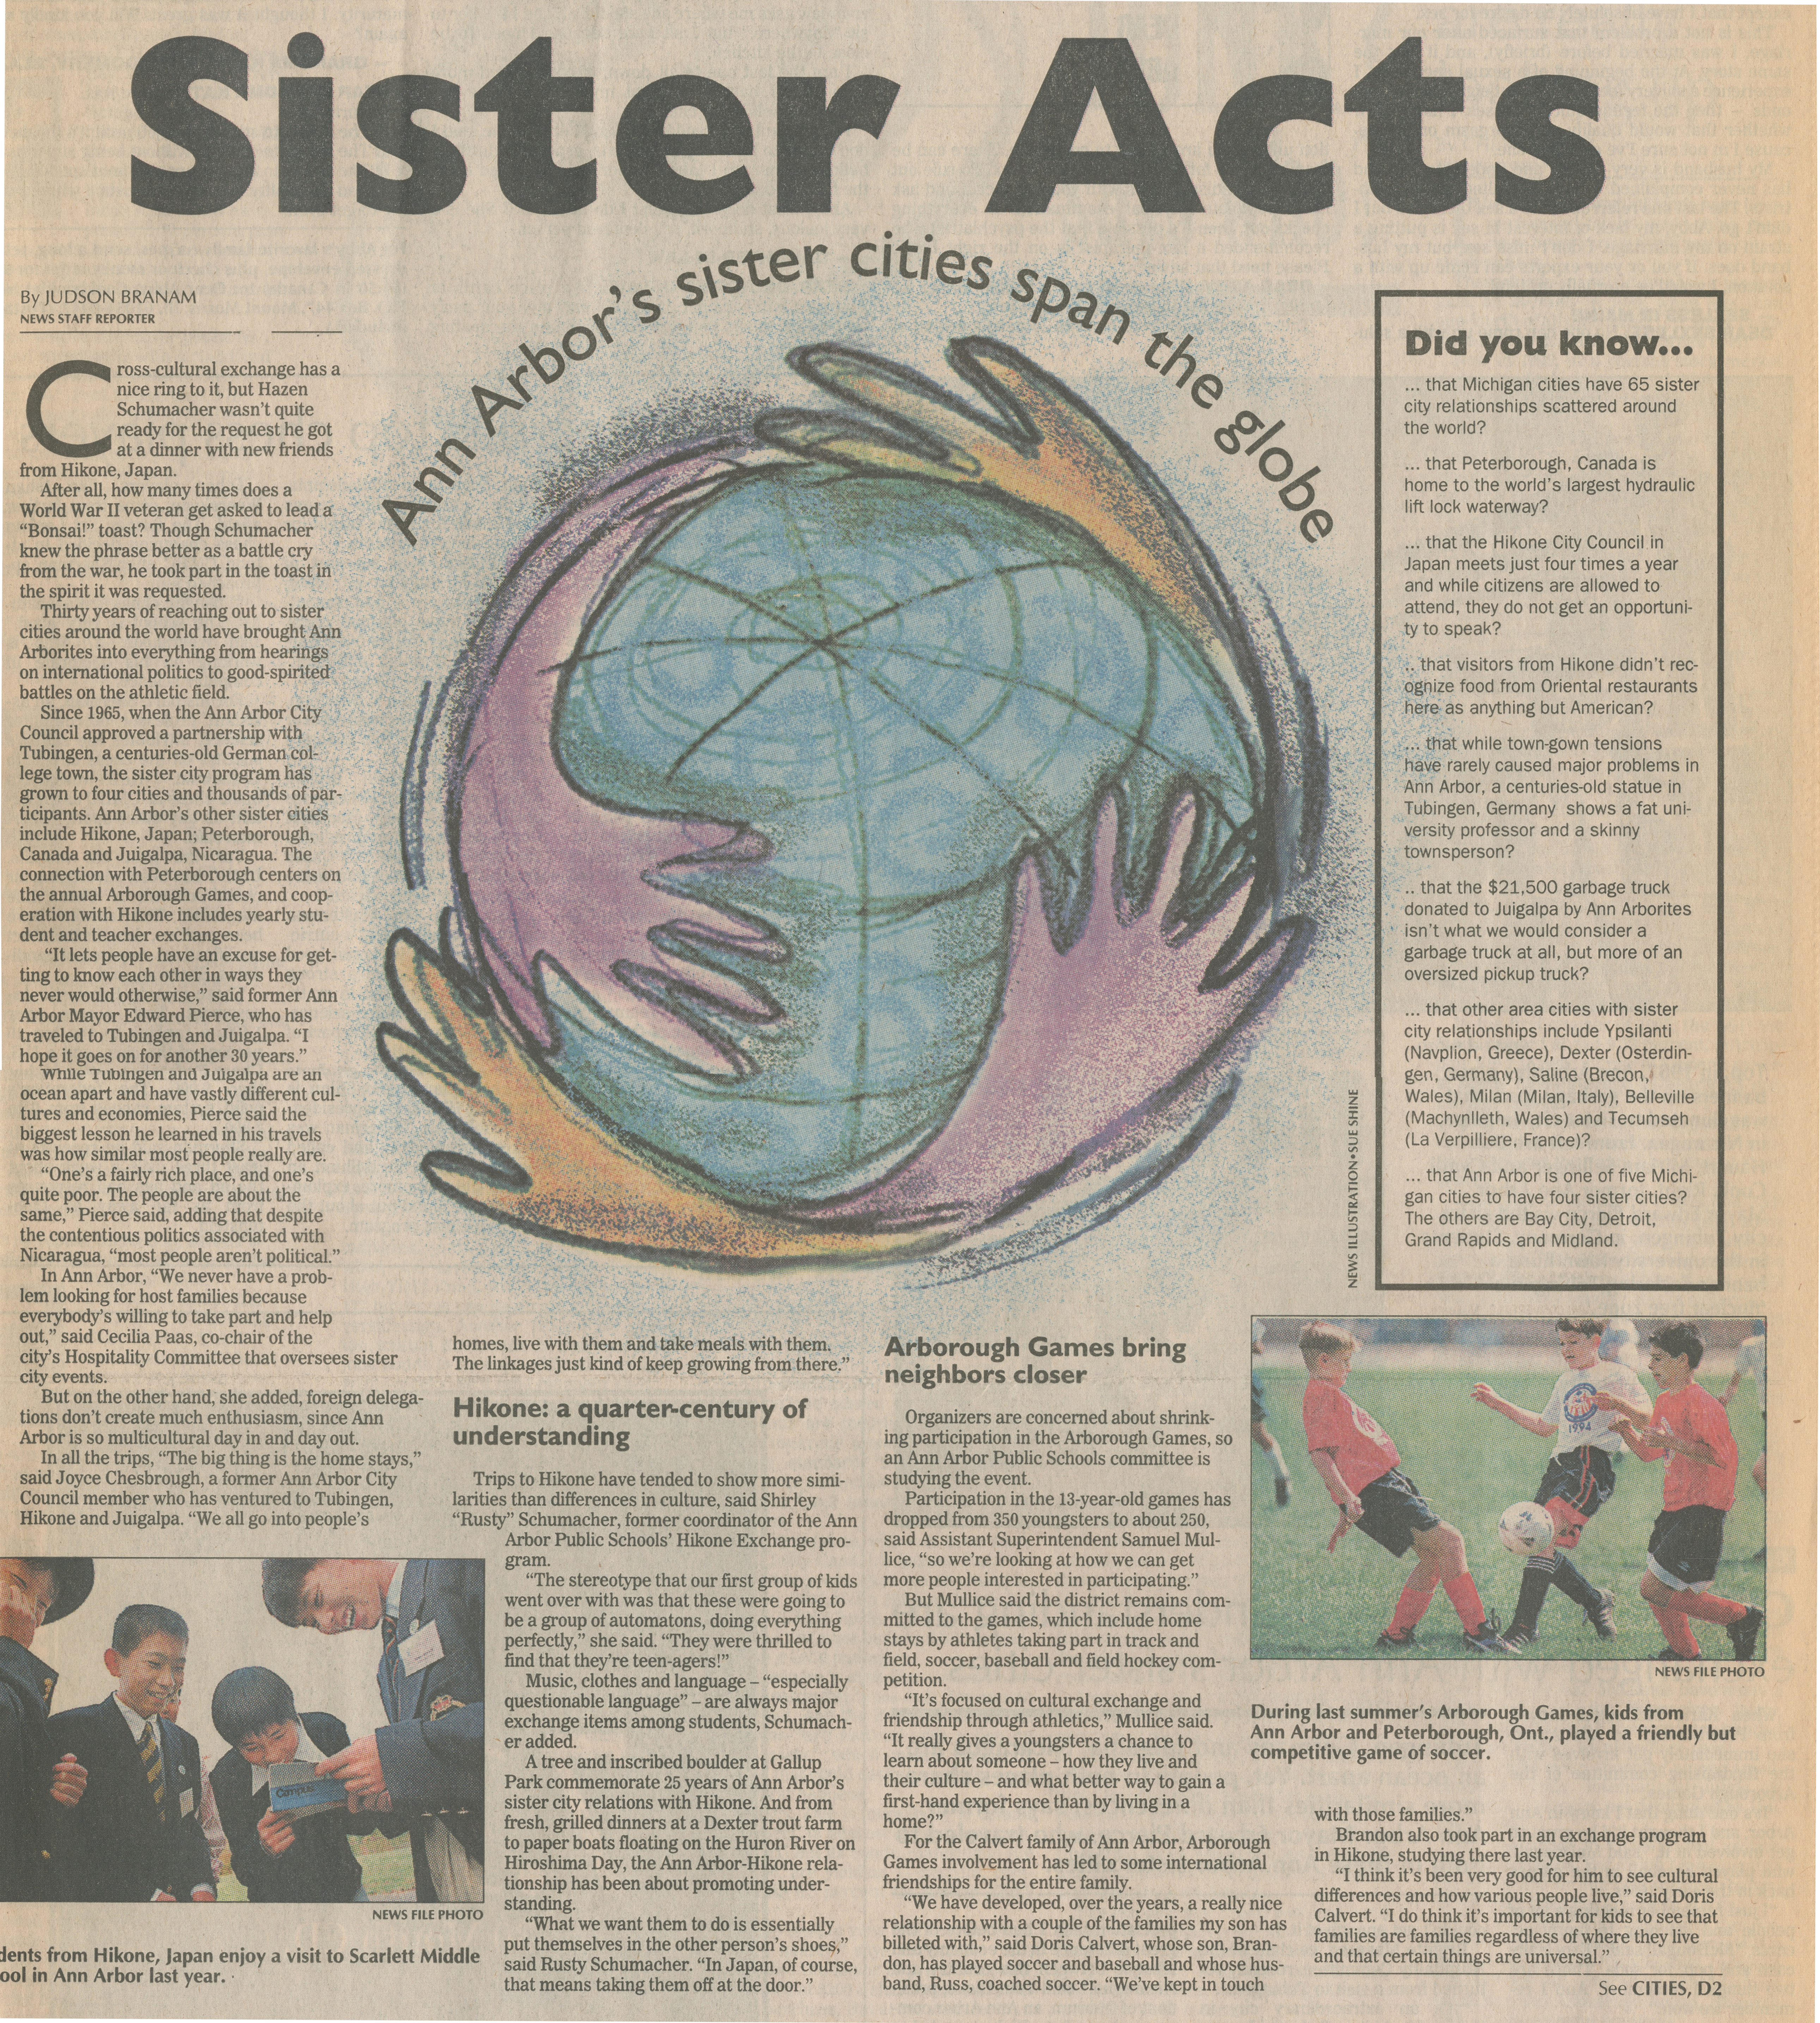 Sister Acts - Ann Arbor's Sister Cities Span The Globe image